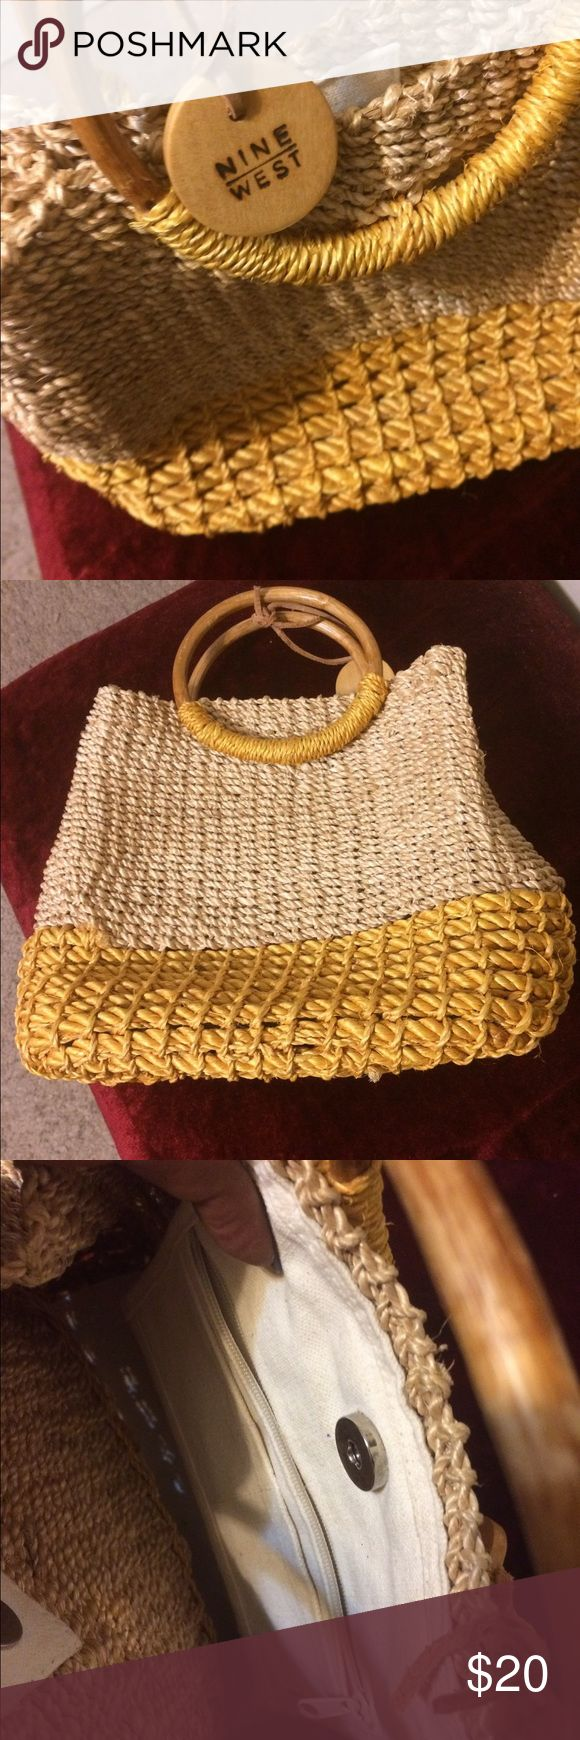 Summer Purse High quality straw as seen in pic; used once! Lightweight and spacious for size🌴🌼👌 Nine West Bags Mini Bags